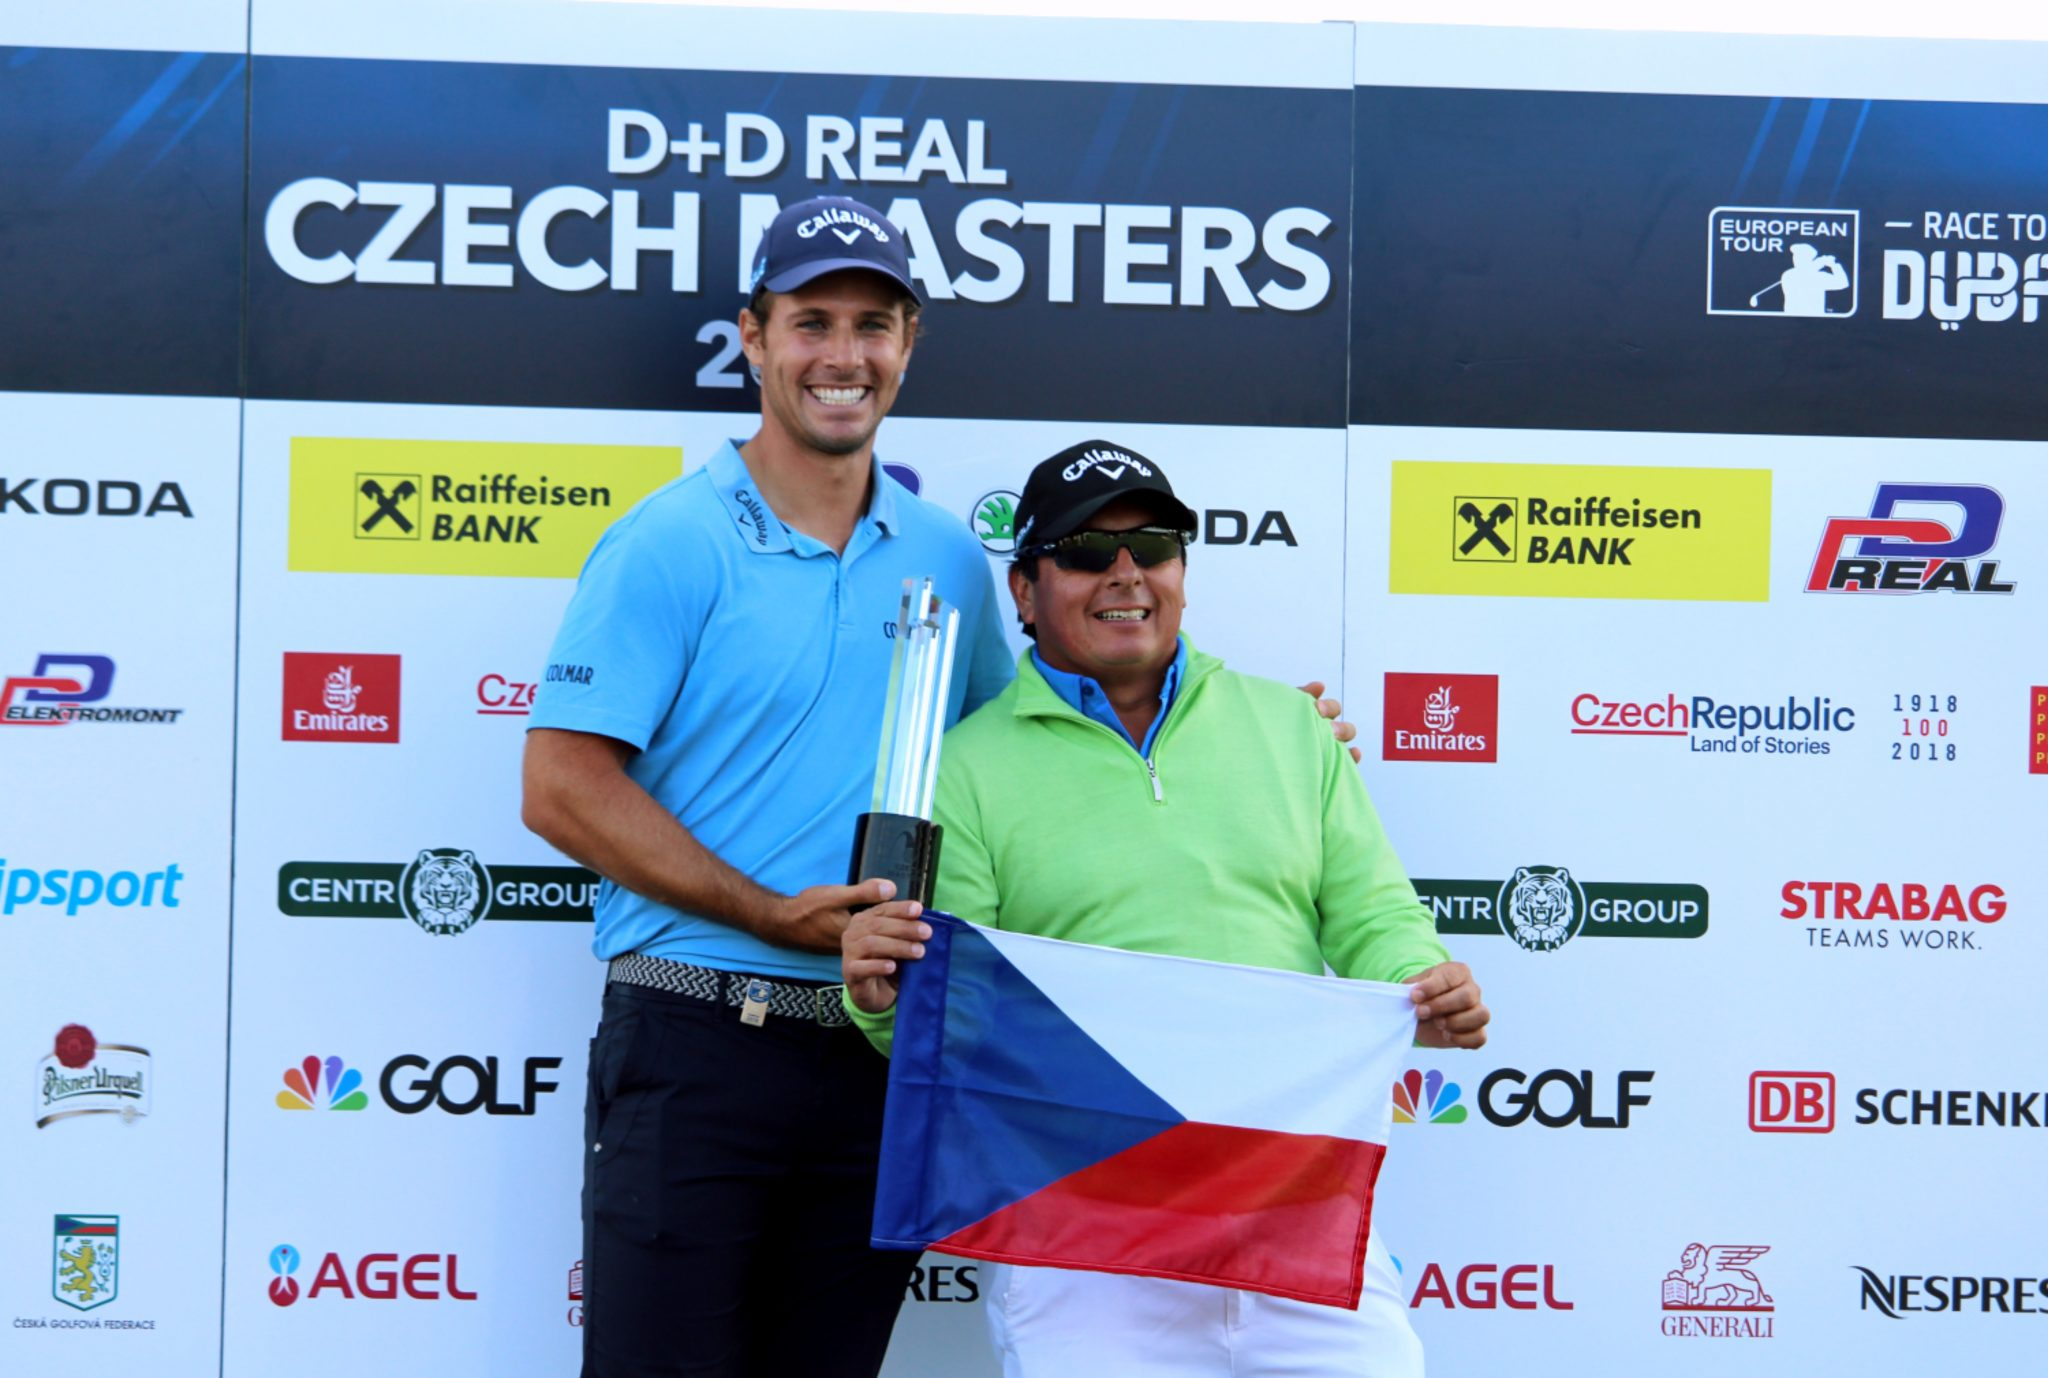 Andrea Pavan with his caddie